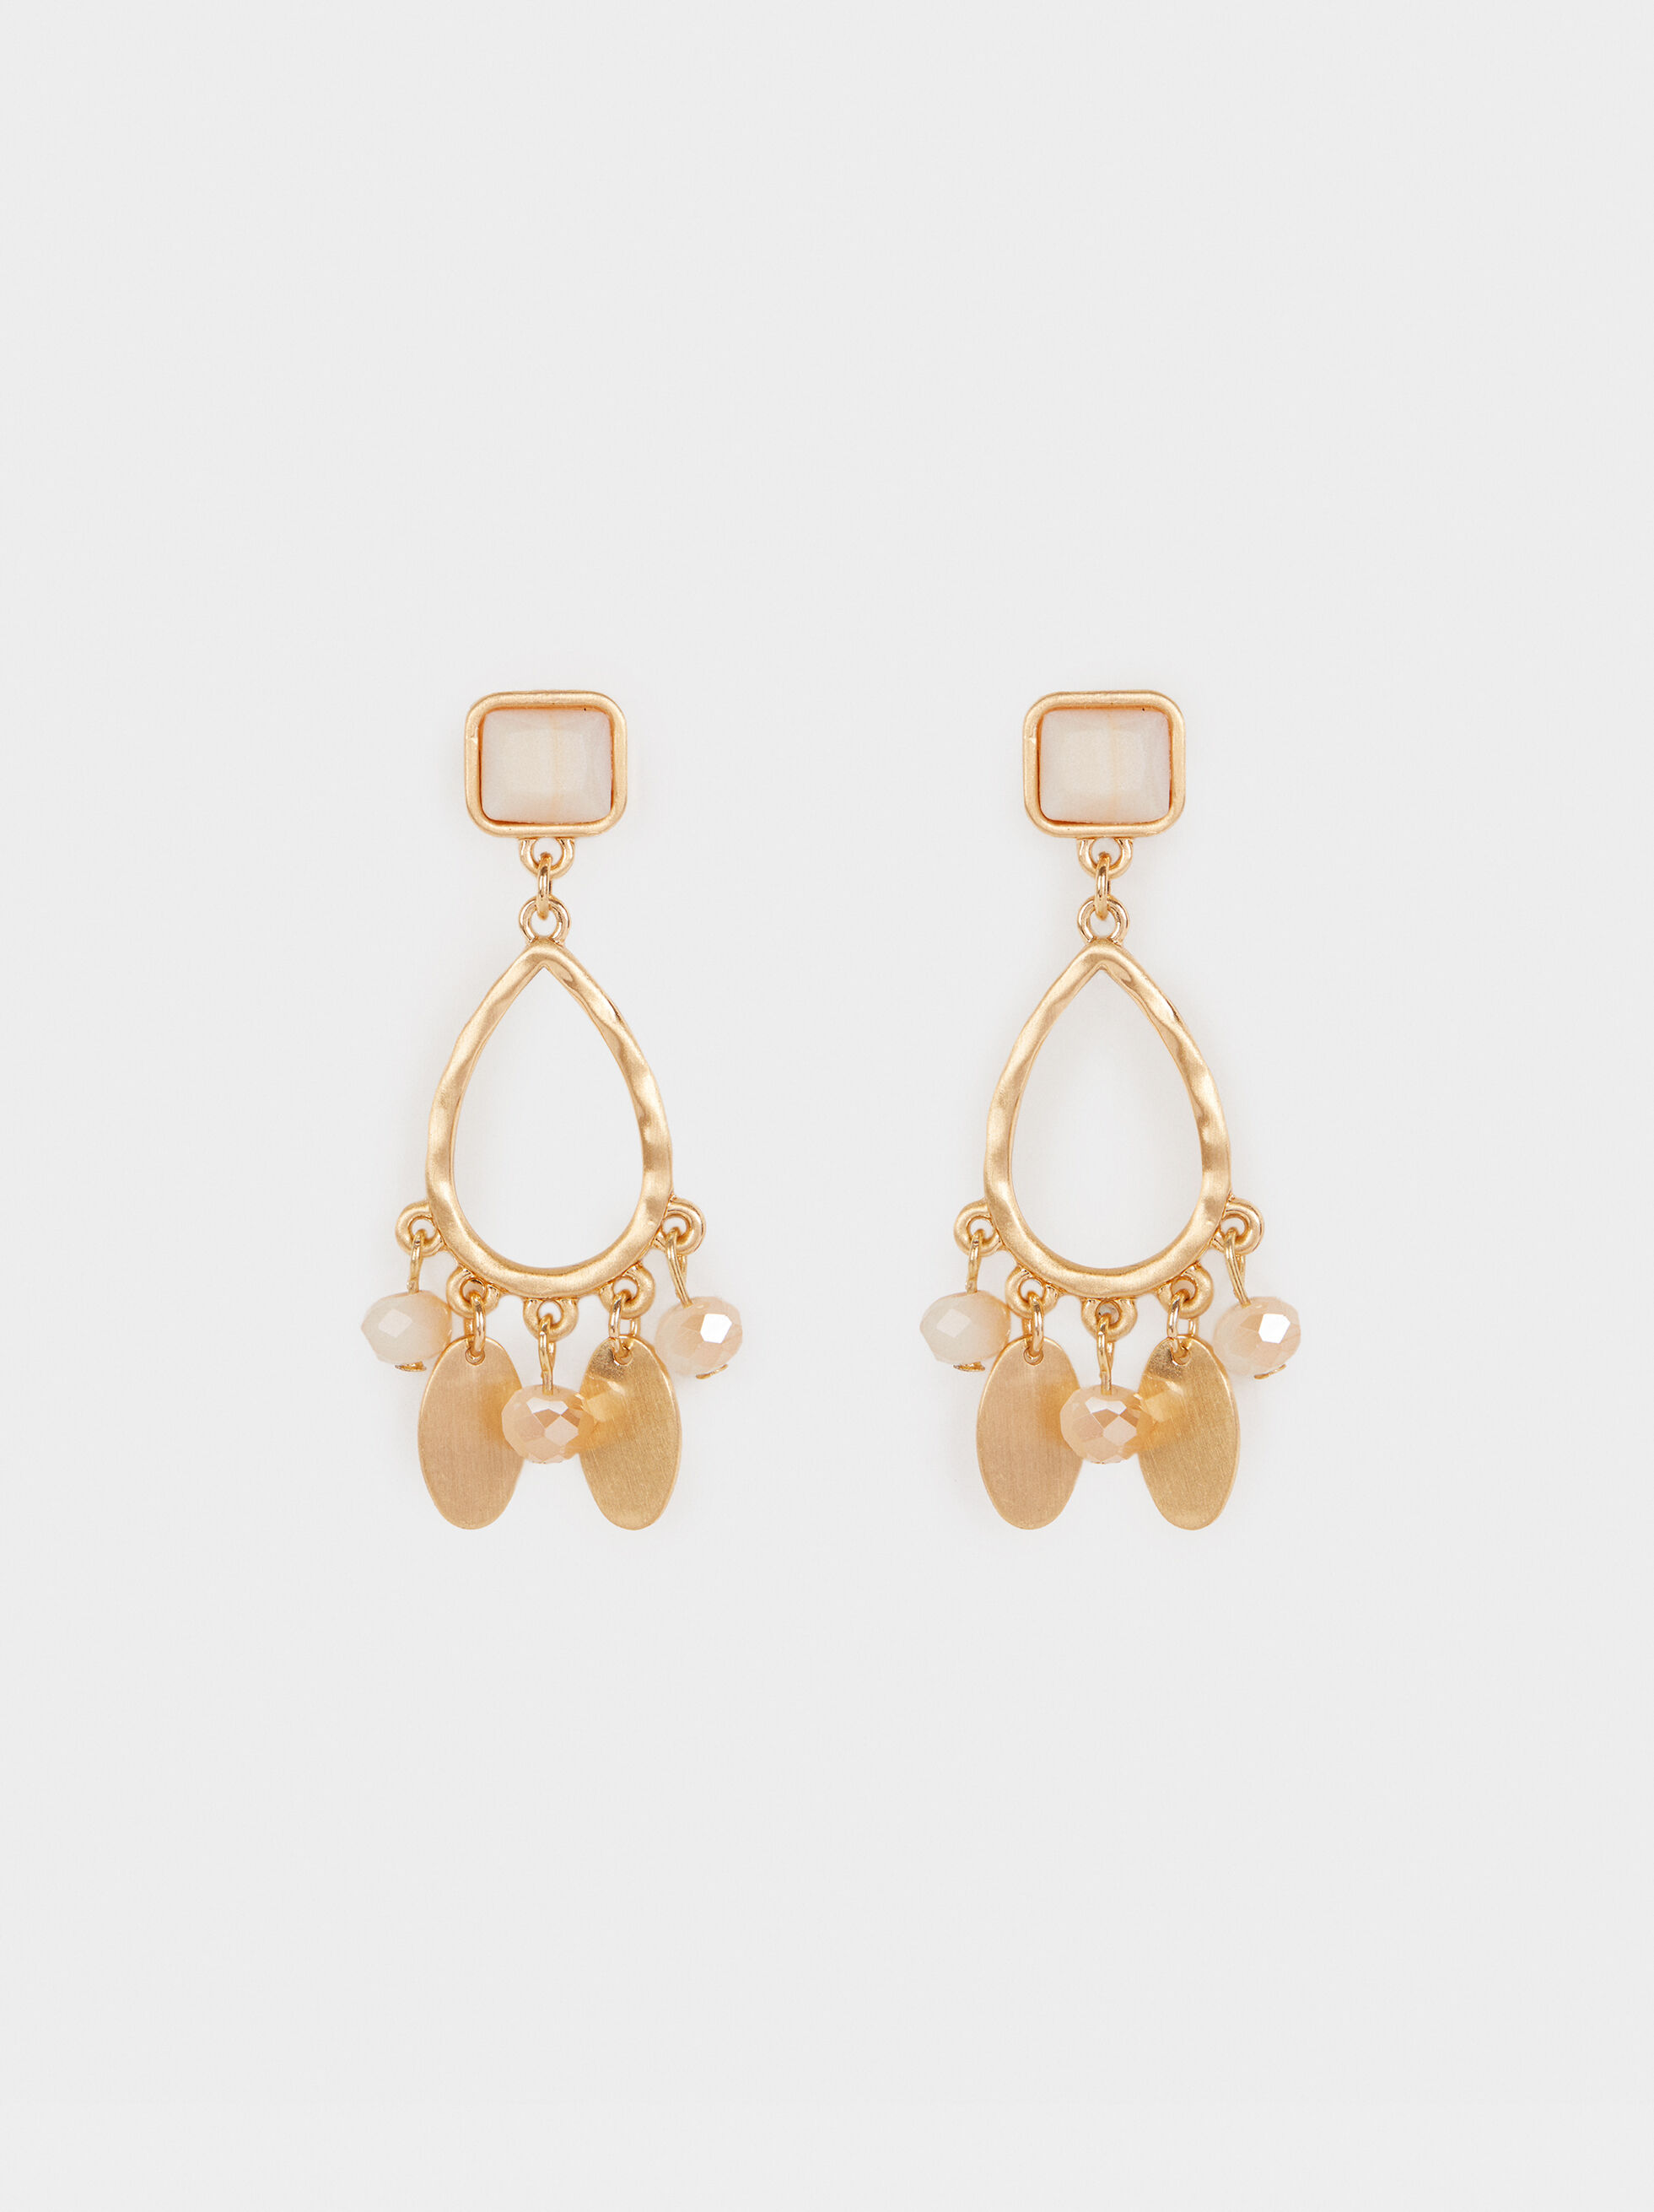 Creme Medium Earrings, Multicolor, hi-res